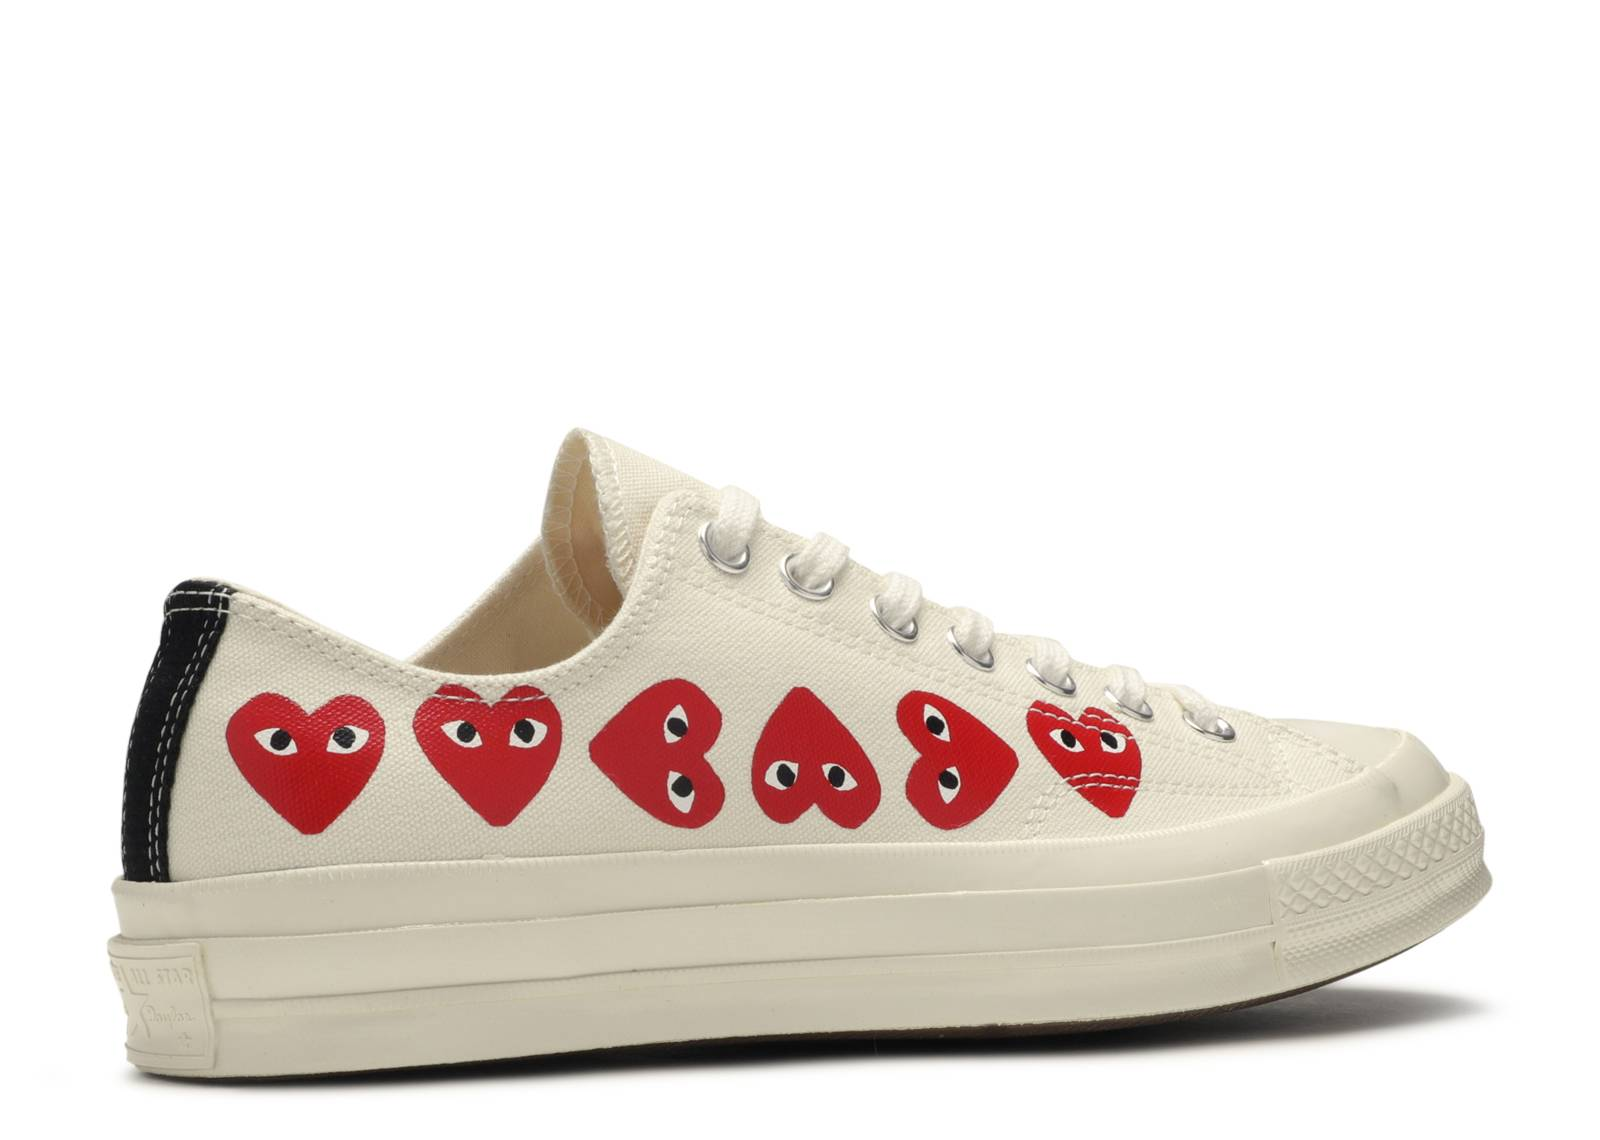 Servicio Decepcionado perdón  Comme Des Garçons Play X Chuck 70 Low Top 'Multi Heart' - Converse -  162975C - white | Flight Club